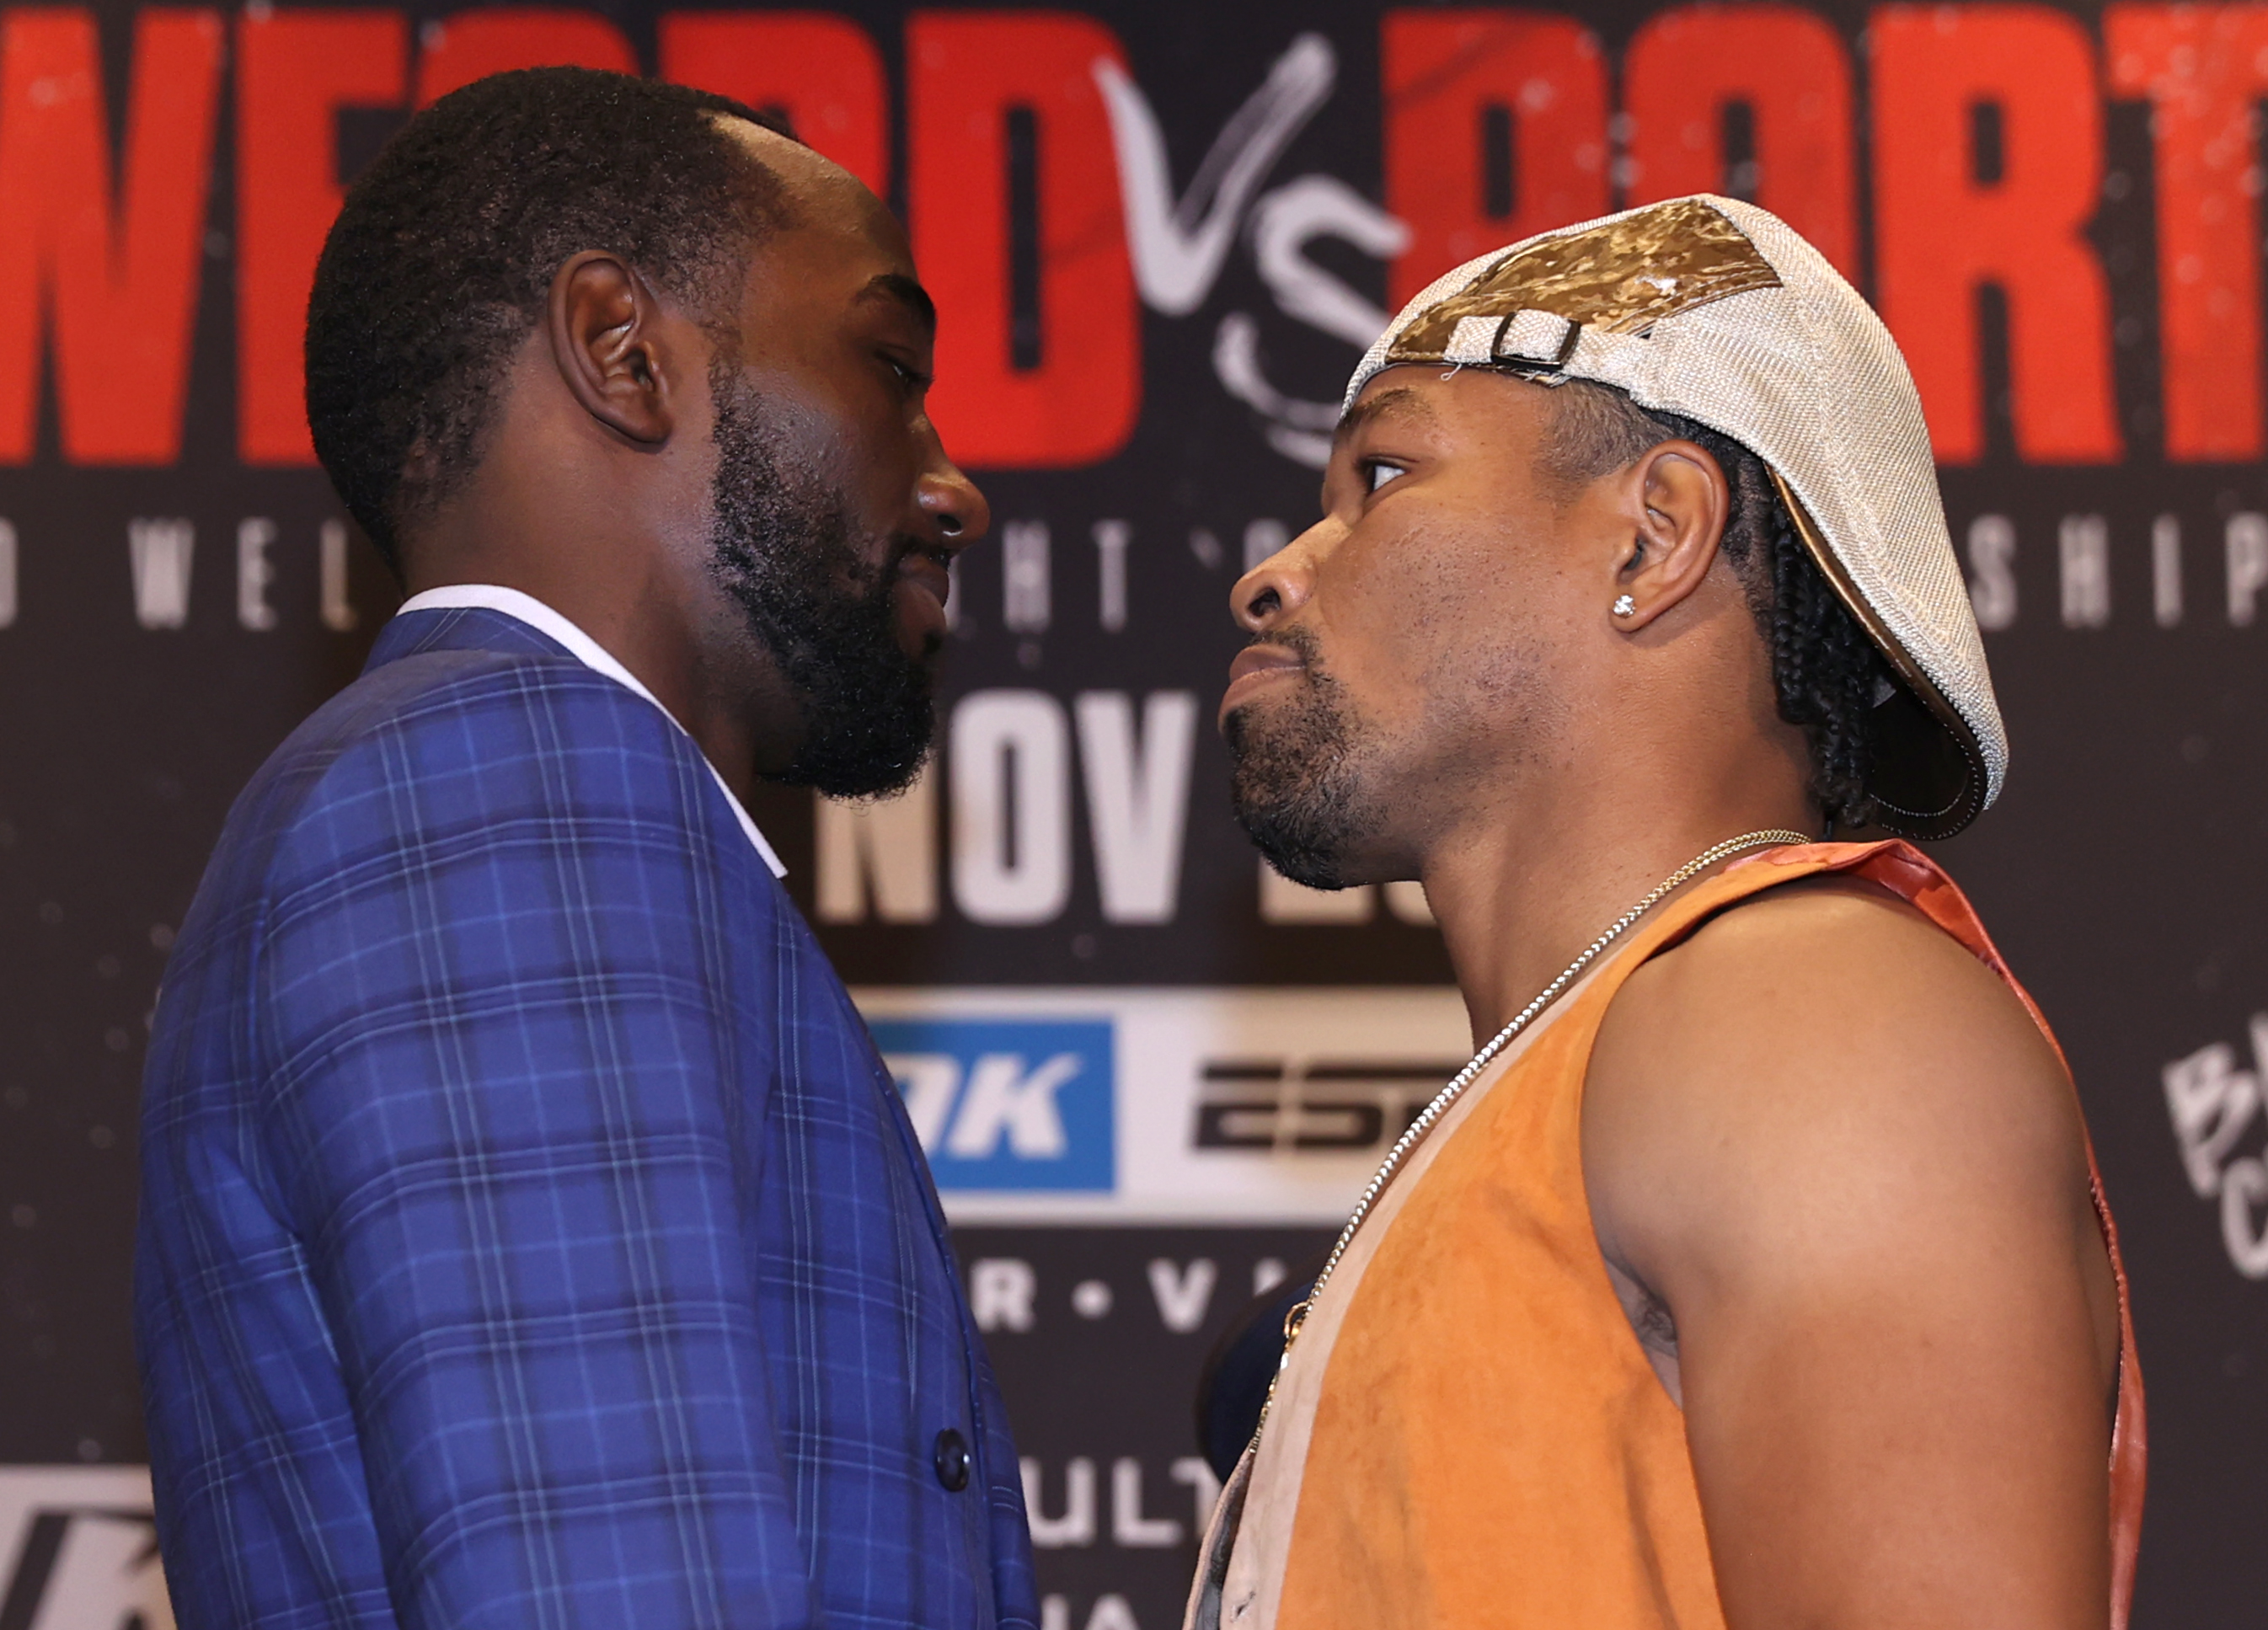 Terence Crawford and Shawn Porter go face-to-face